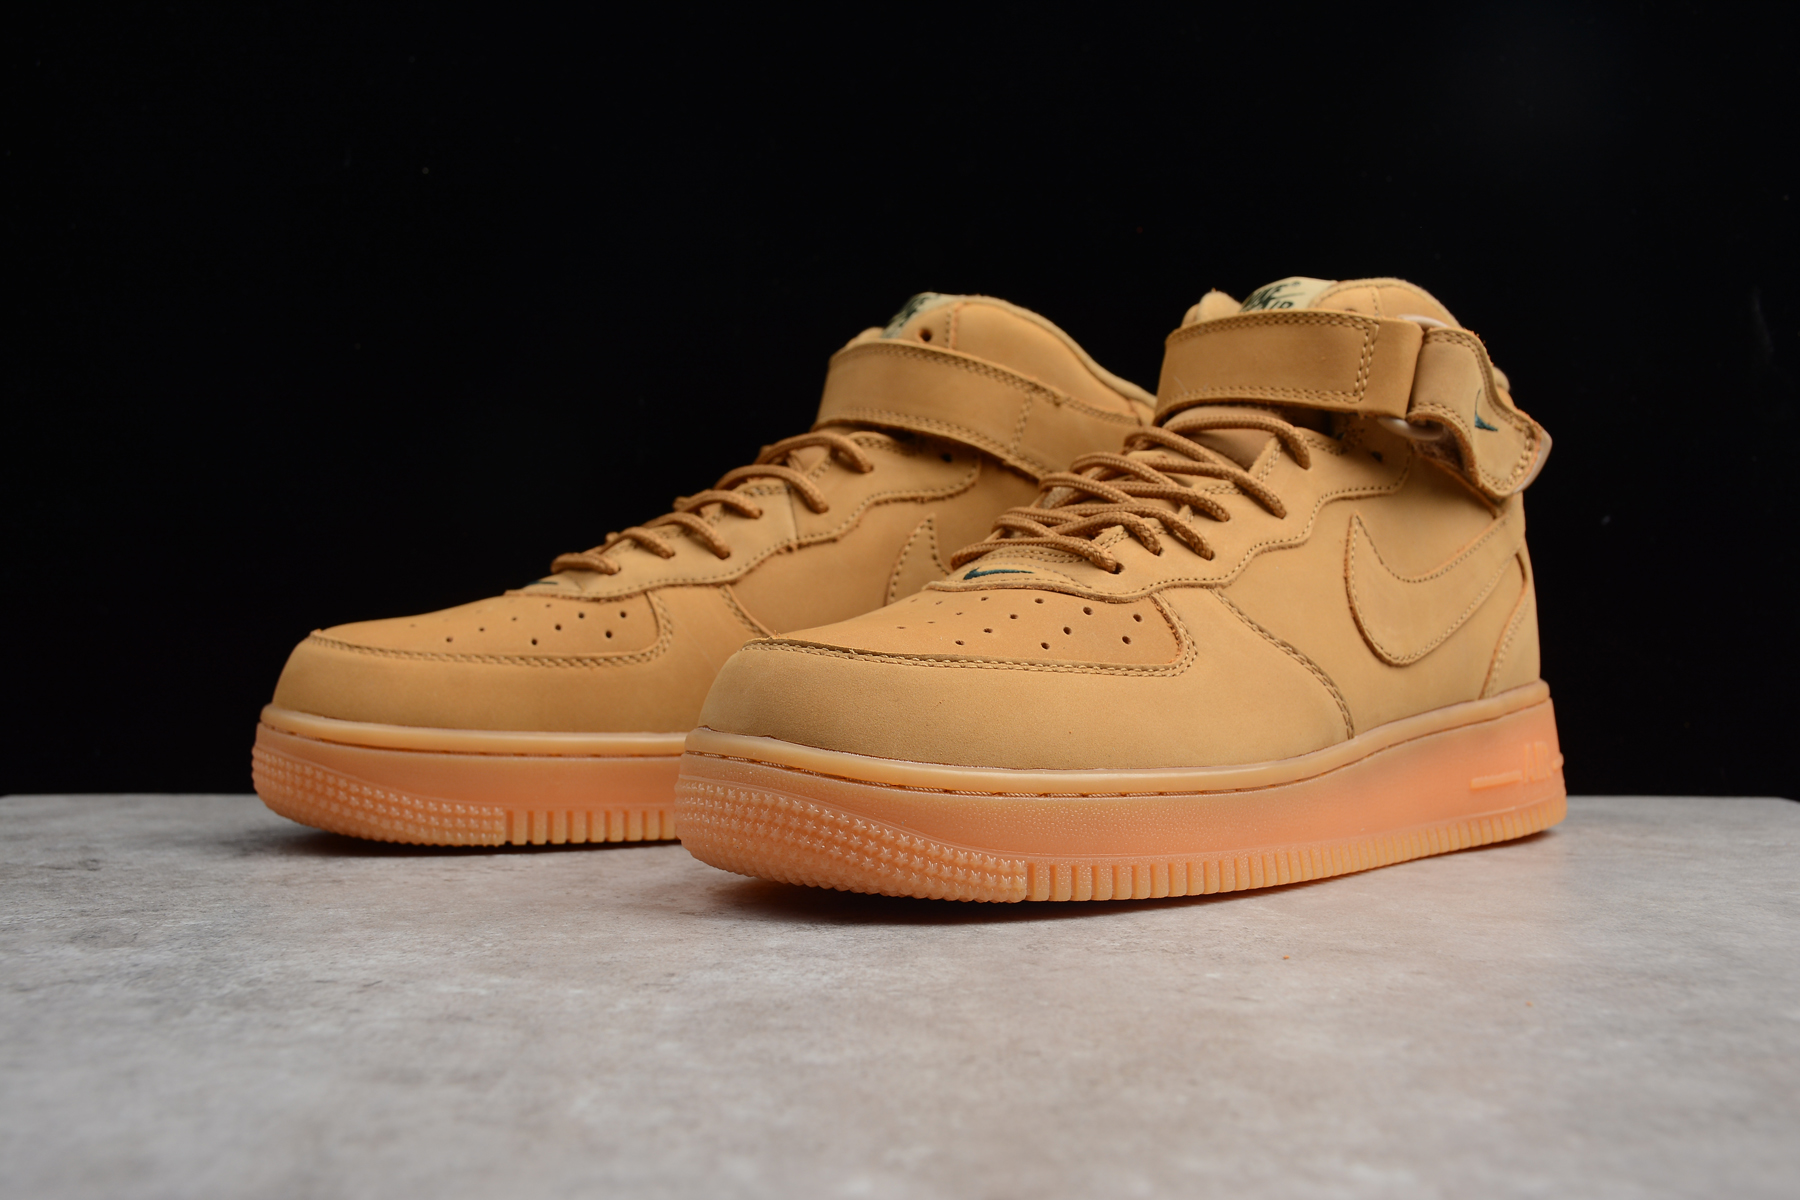 Nike Air Force 1 High LV8 Wheat NFlax Flax Outdoor Green